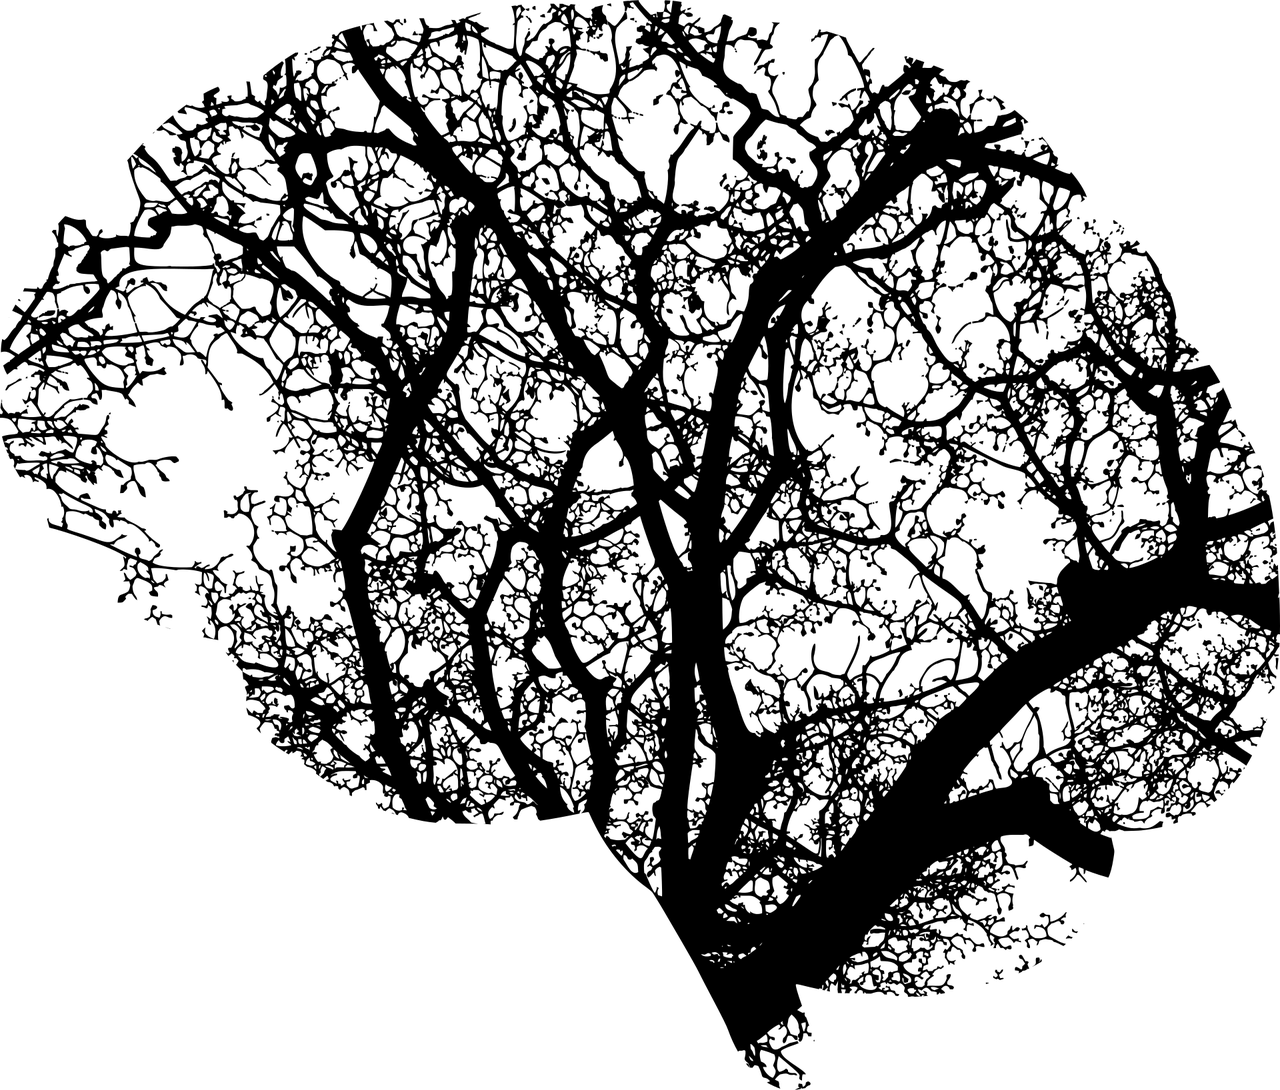 Tree of life black and white clipart clipart freeuse download Synchronicity, the soul and our mental health | TIME IS ART clipart freeuse download